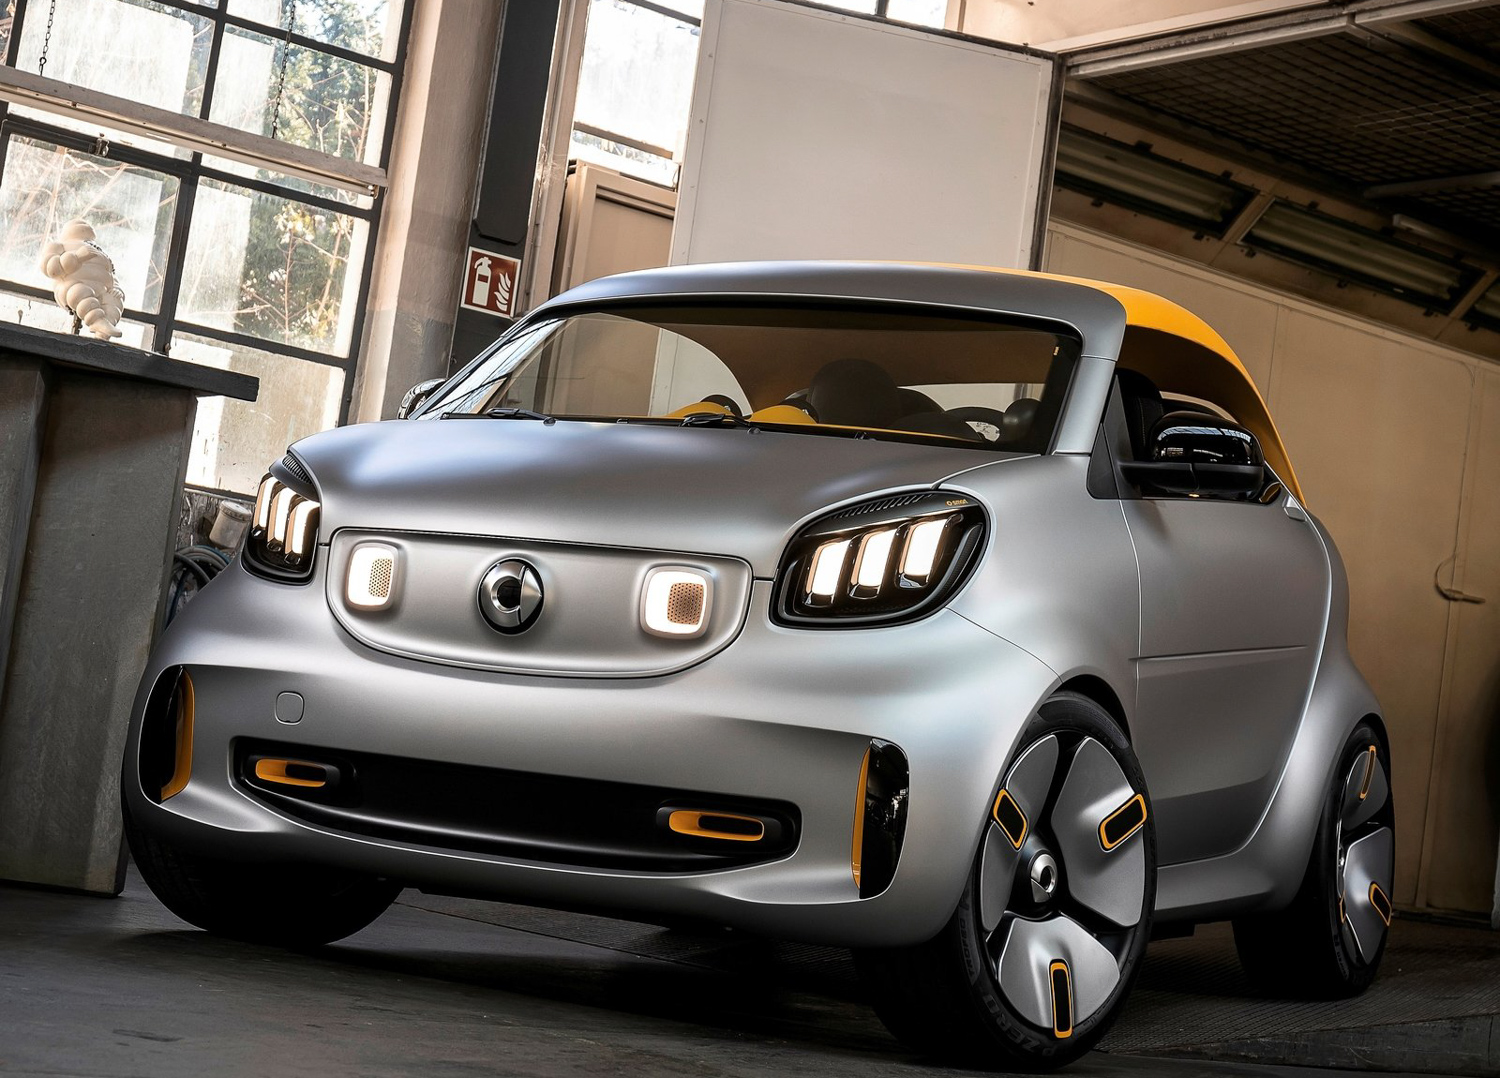 Smart survives, amidst new Daimler-Geely partnership thumbnail